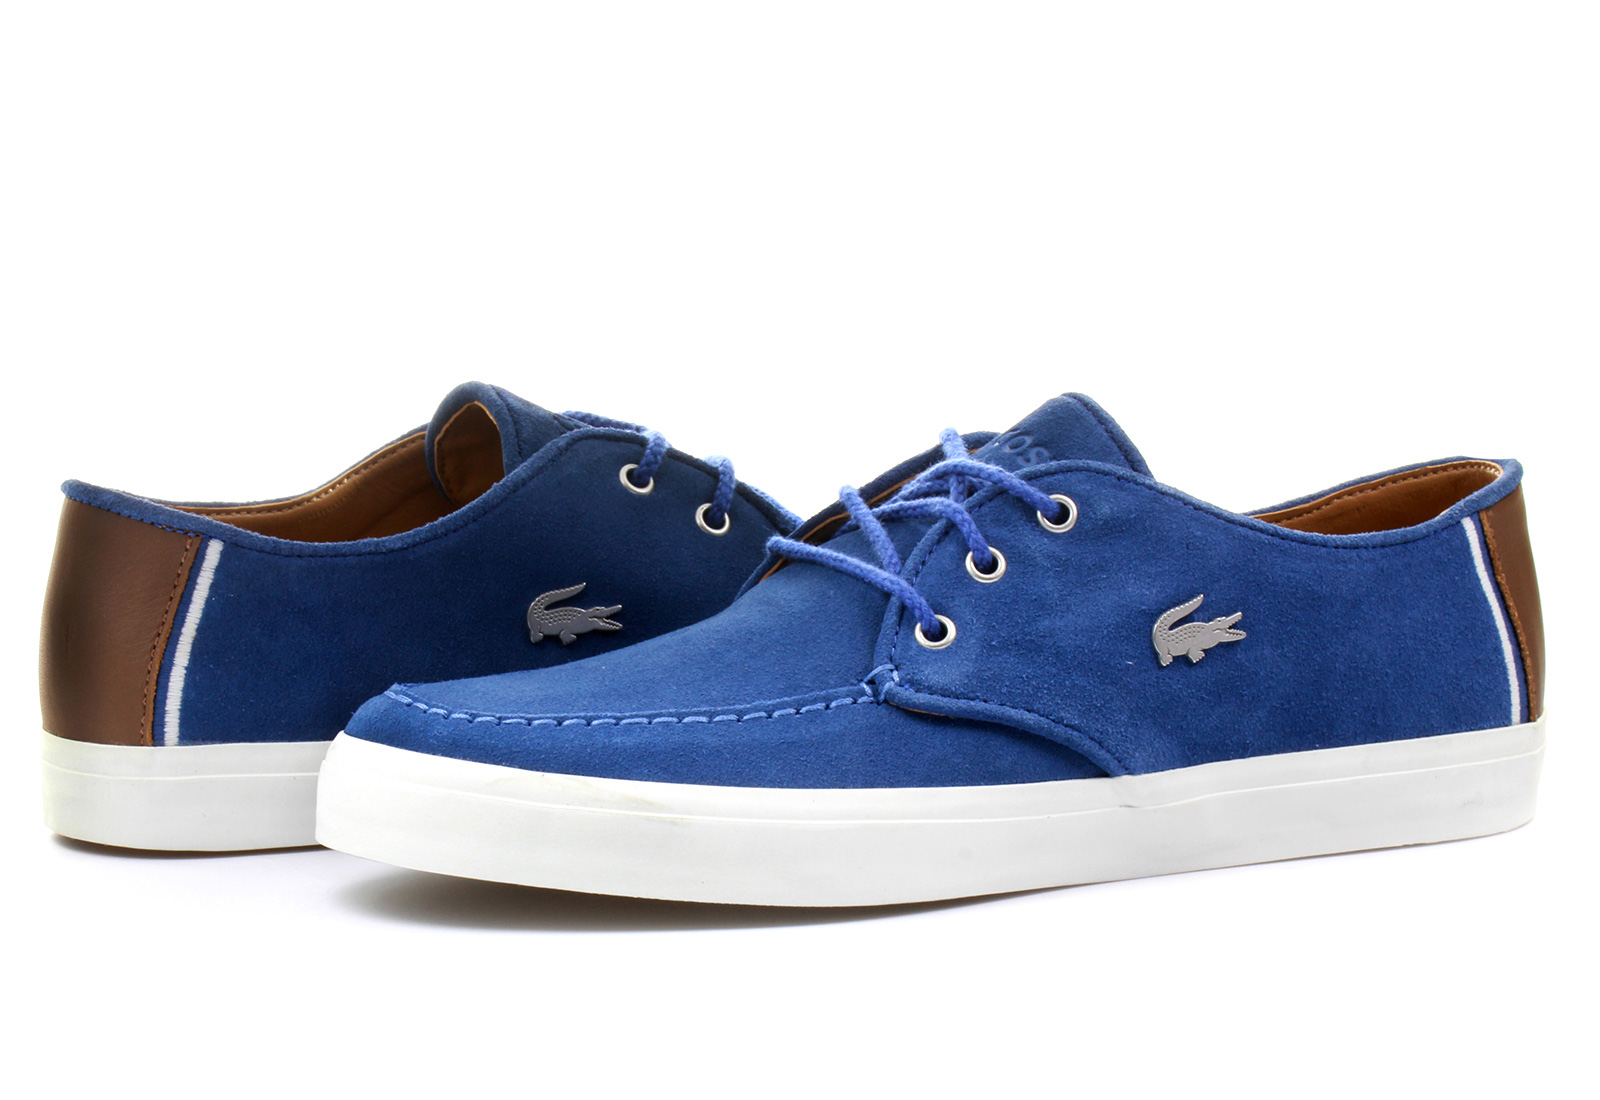 lacoste shoes sevrin 141srm1231 125 online shop for sneakers shoes and boots. Black Bedroom Furniture Sets. Home Design Ideas